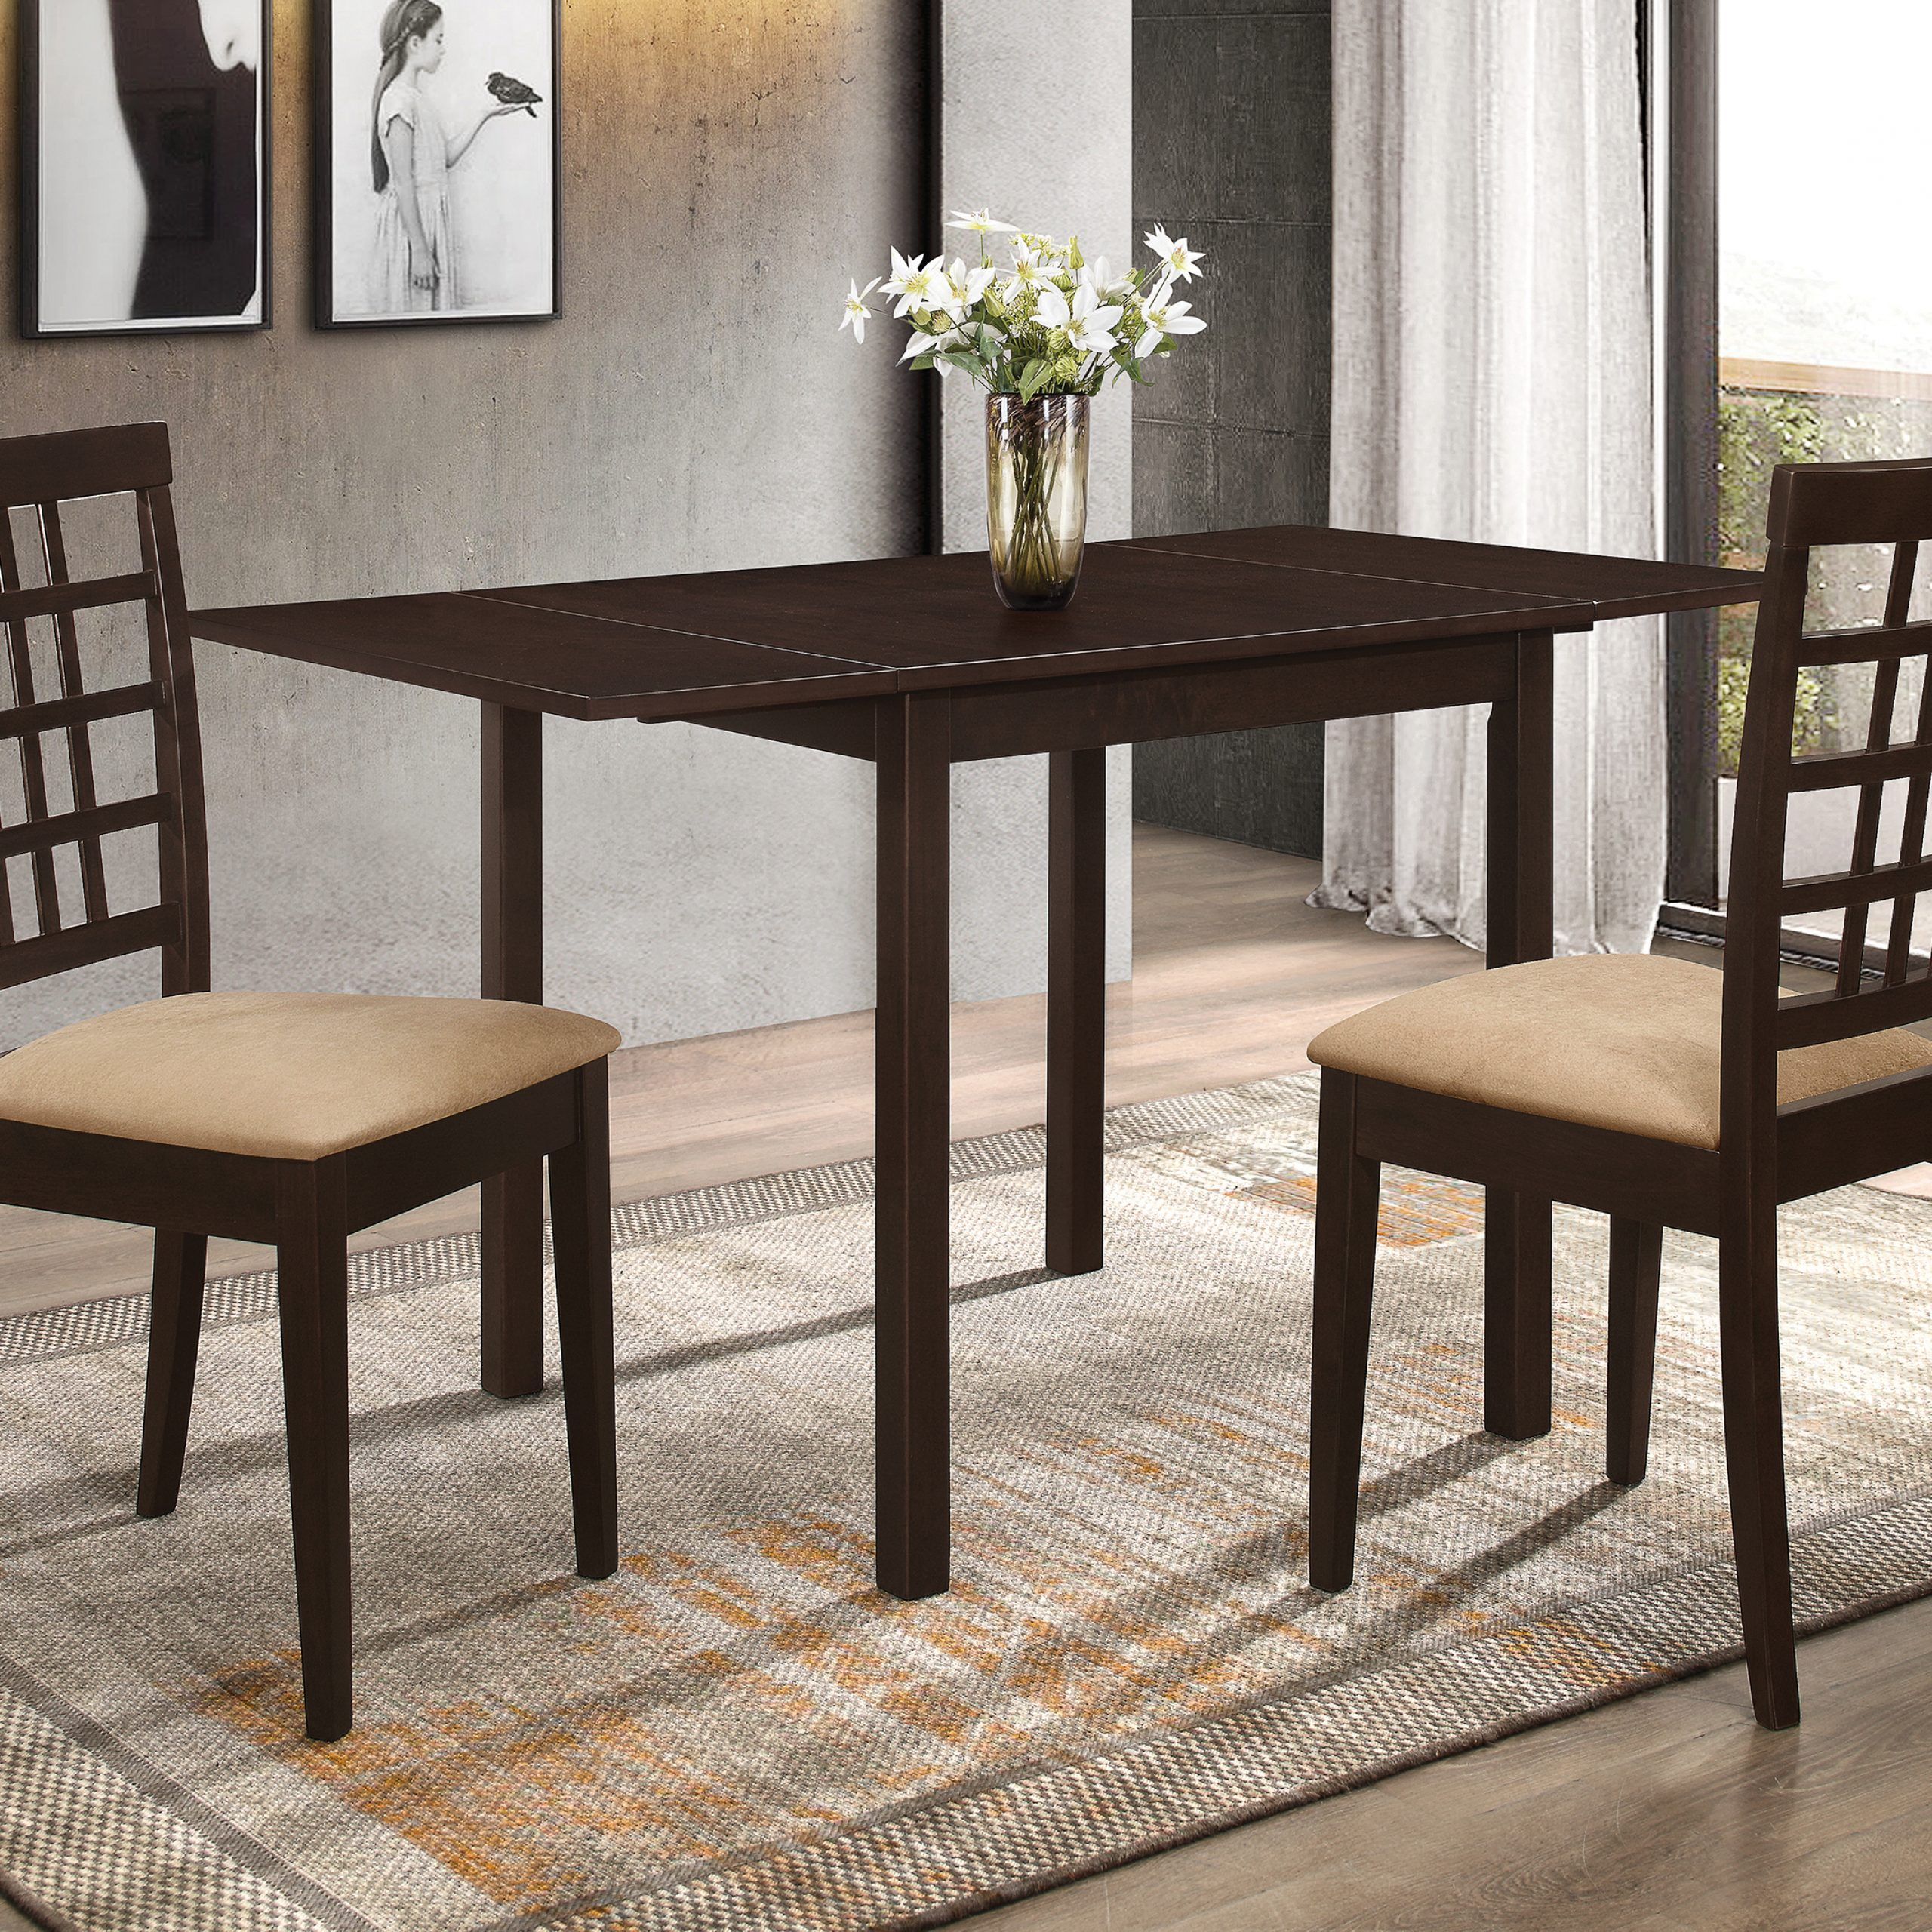 Well Liked Kelso Rectangular Dining Table With Drop Leaf Cappuccino Inside Transitional 4 Seating Drop Leaf Casual Dining Tables (View 6 of 30)